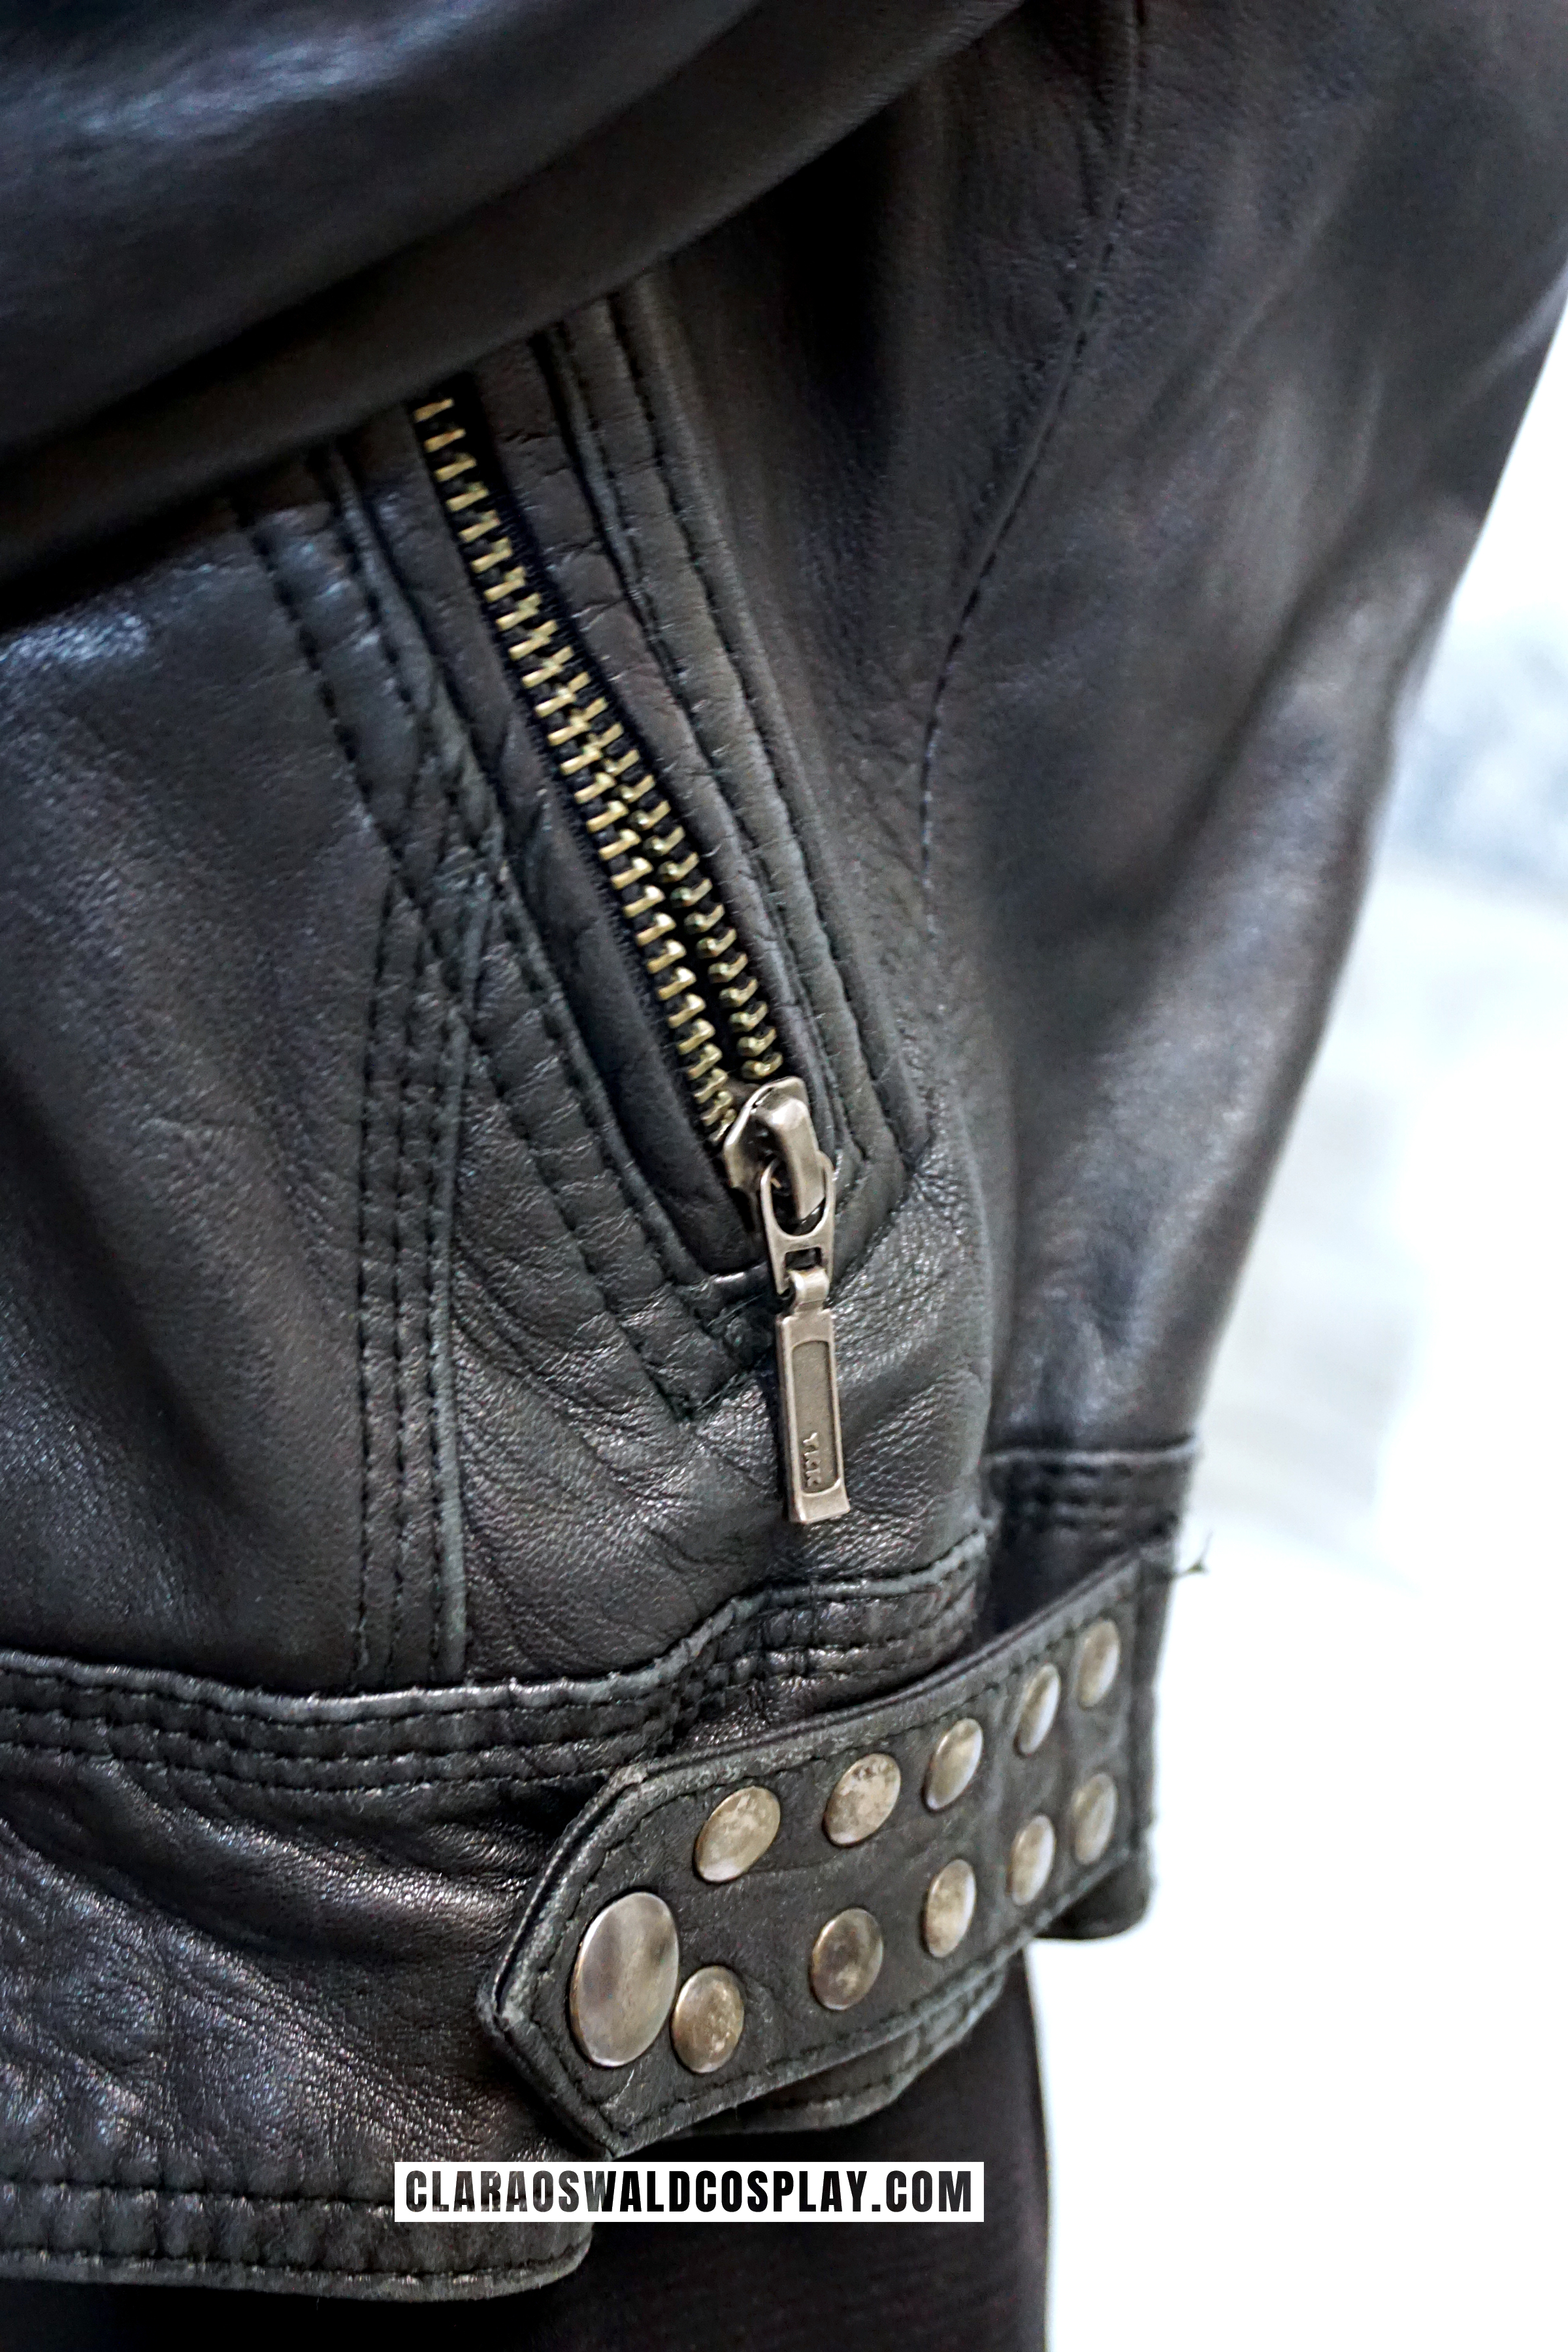 There are studded applications on the sides and the shoulder